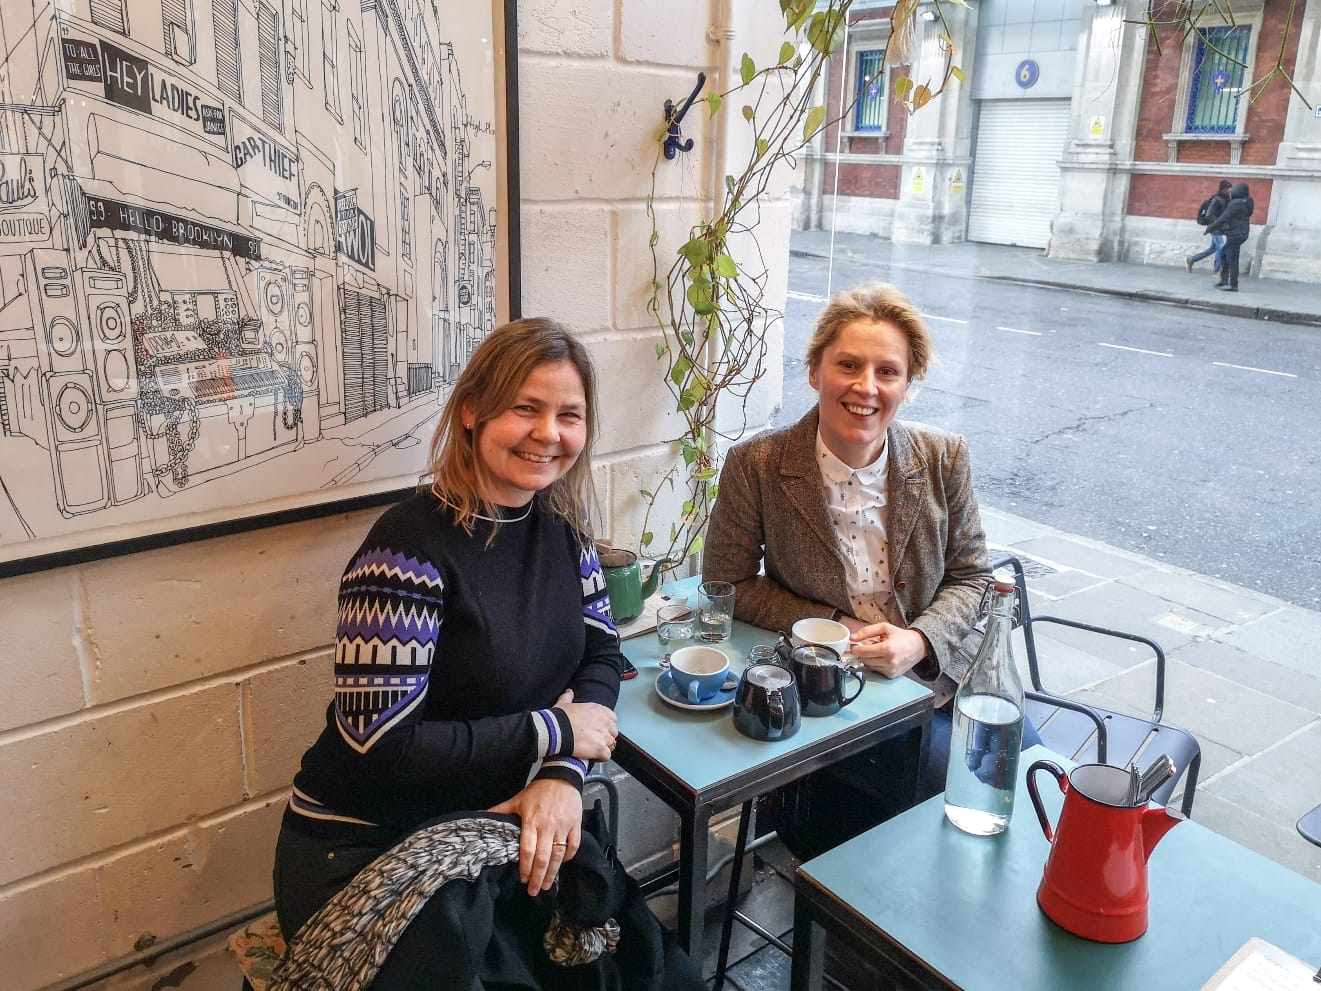 Actor and writer Kate Willoughby, who heads up New Europeans campaigns, shares a cuppa with Danish UK/Ireland correspondent Mette Rodgers to discuss what went wrong with the remain campaign and the way forward.